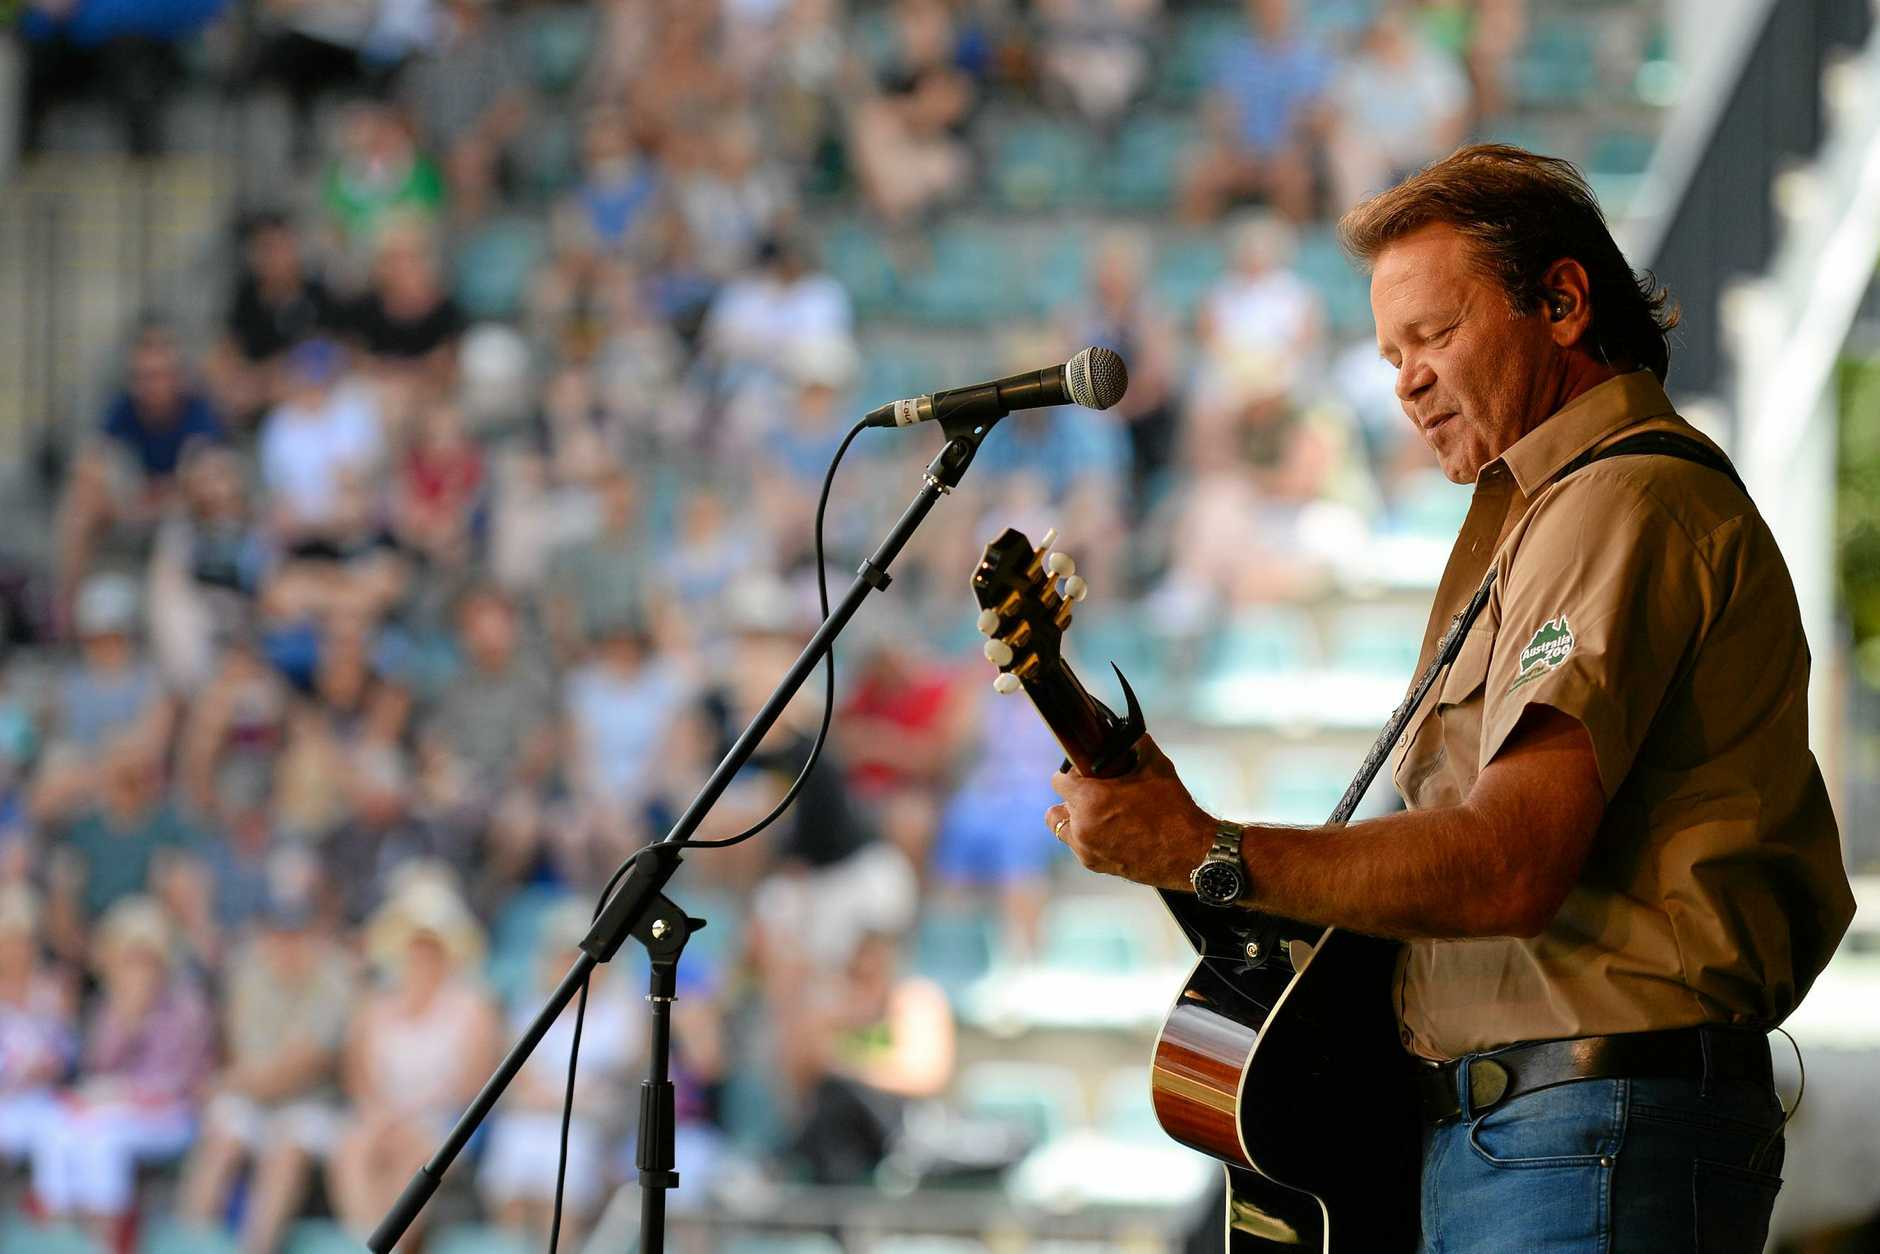 Steve Irwin Day at Australia Zoo, November 15, 2017. Troy Cassar-Daley performed for the crowds, and made his imprint on the zoo's walk of fame.